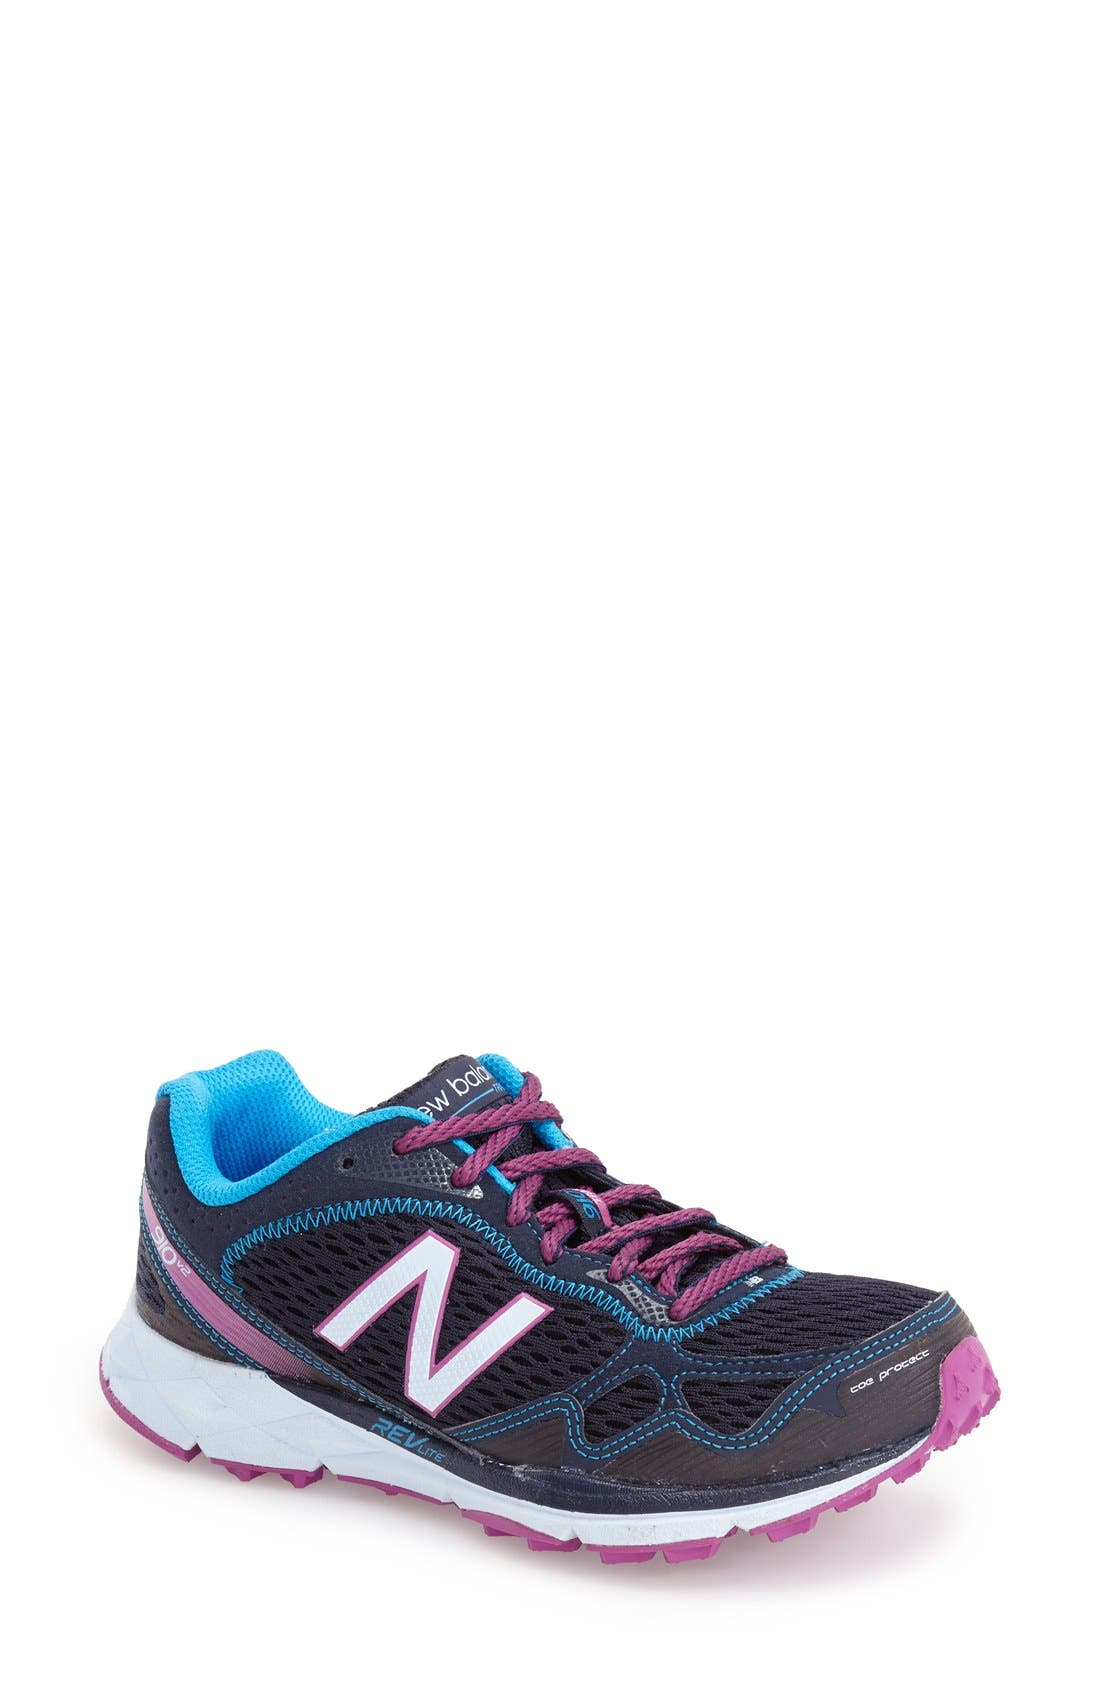 Alternate Image 1 Selected - New Balance '910' Trail Shoe (Women)